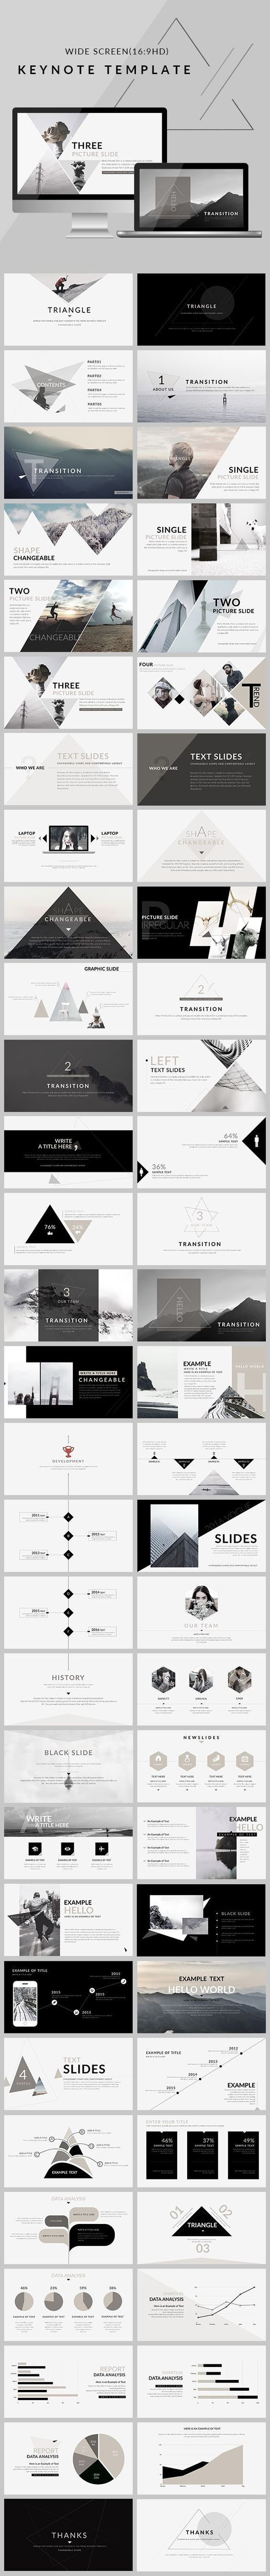 Free Booklet Template Triangle  Clean Trend Keynote Template  Pinterest  Keynote .